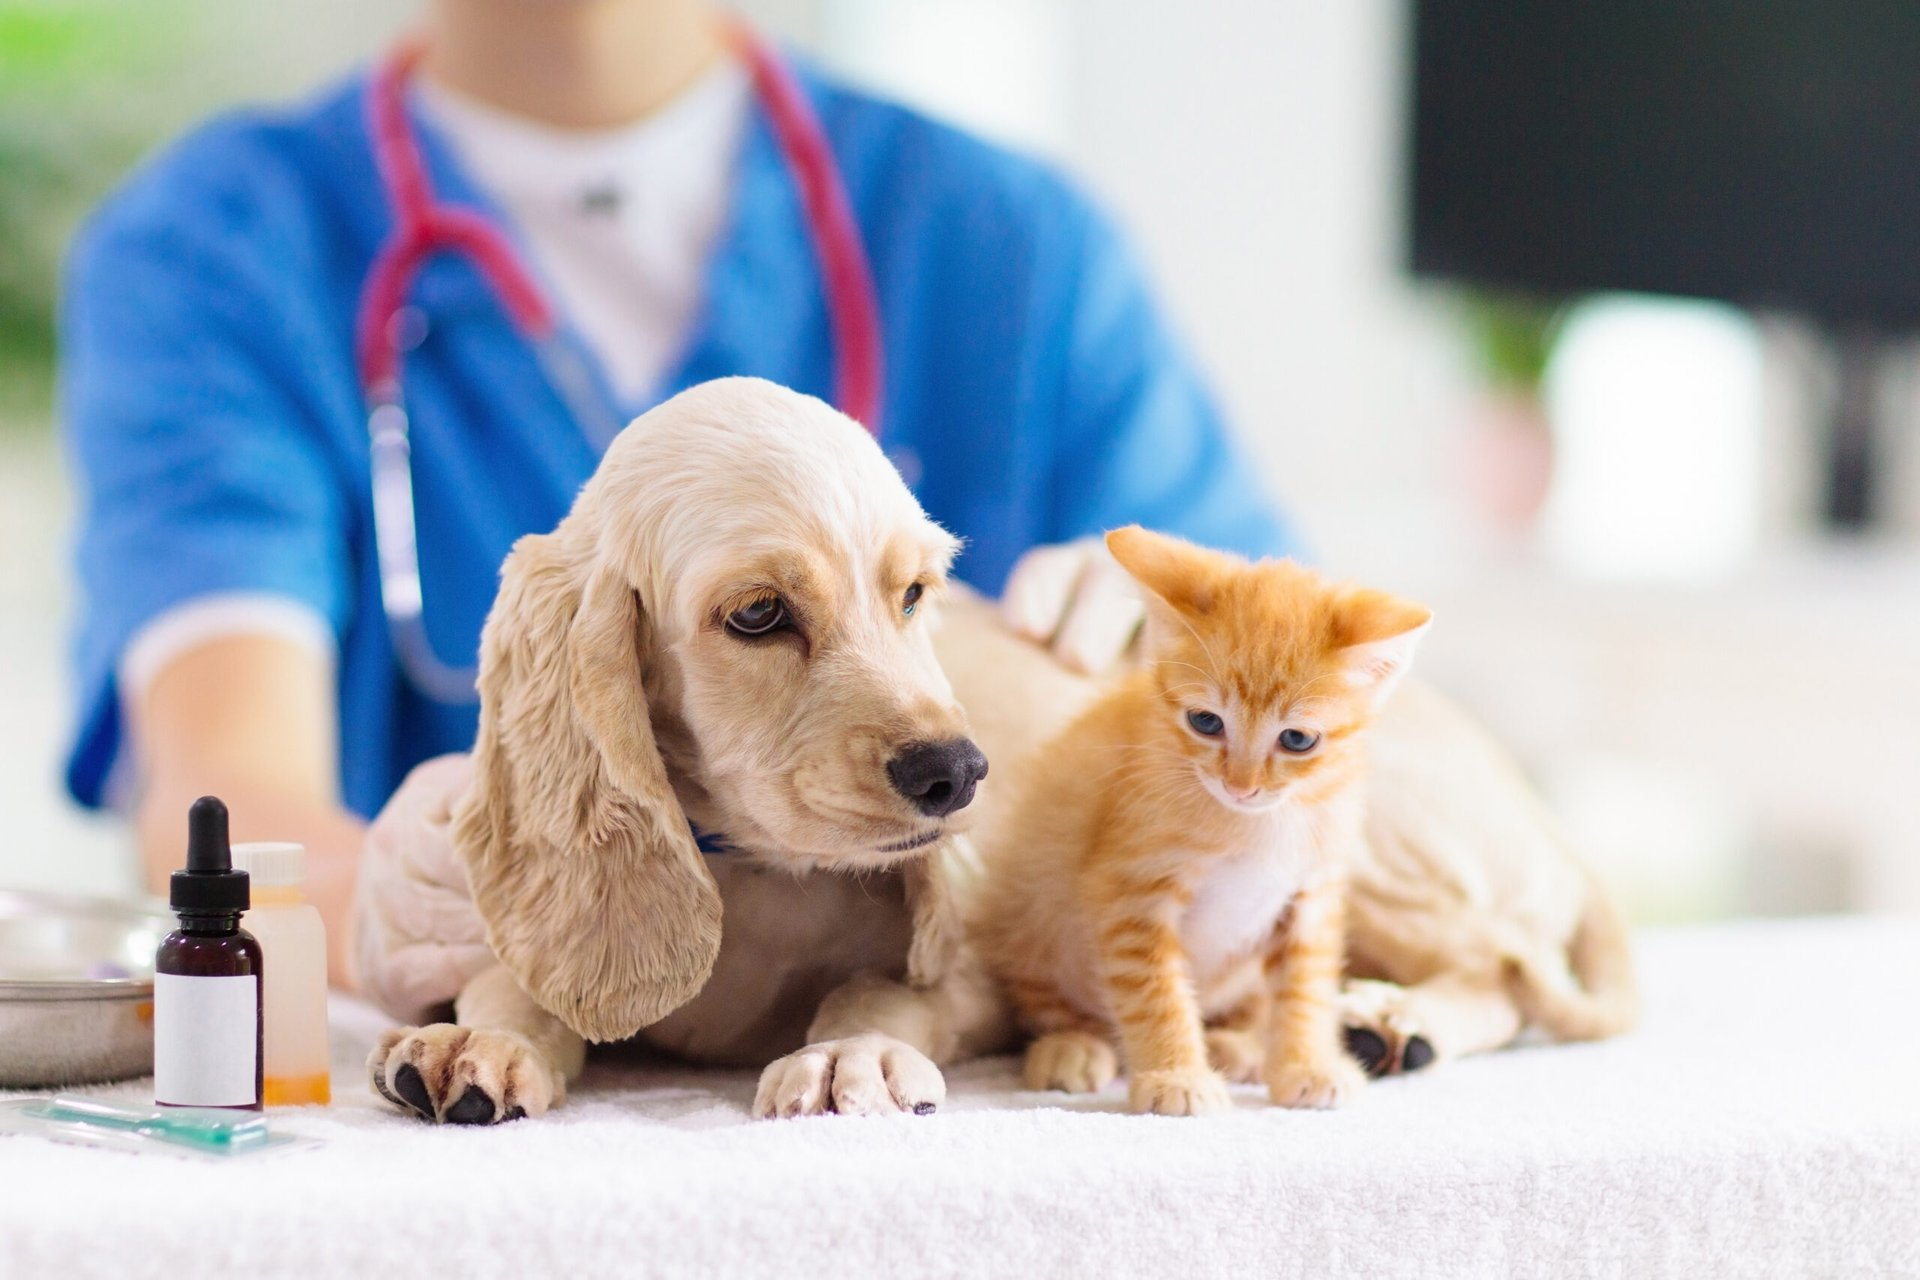 Pets at the vet